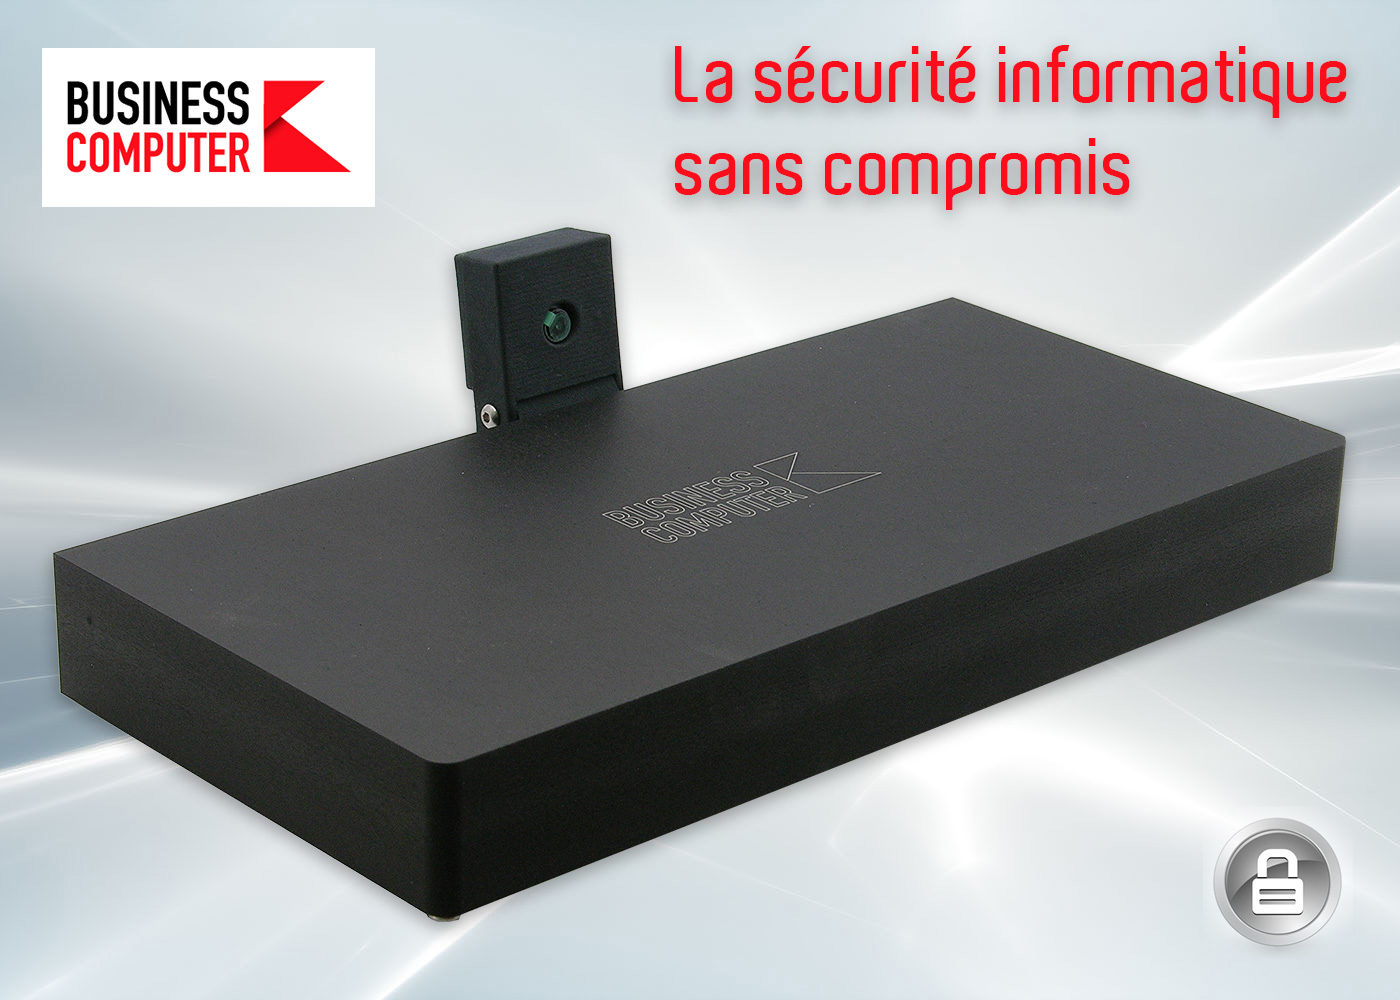 Business Computer – Sécurité informatique